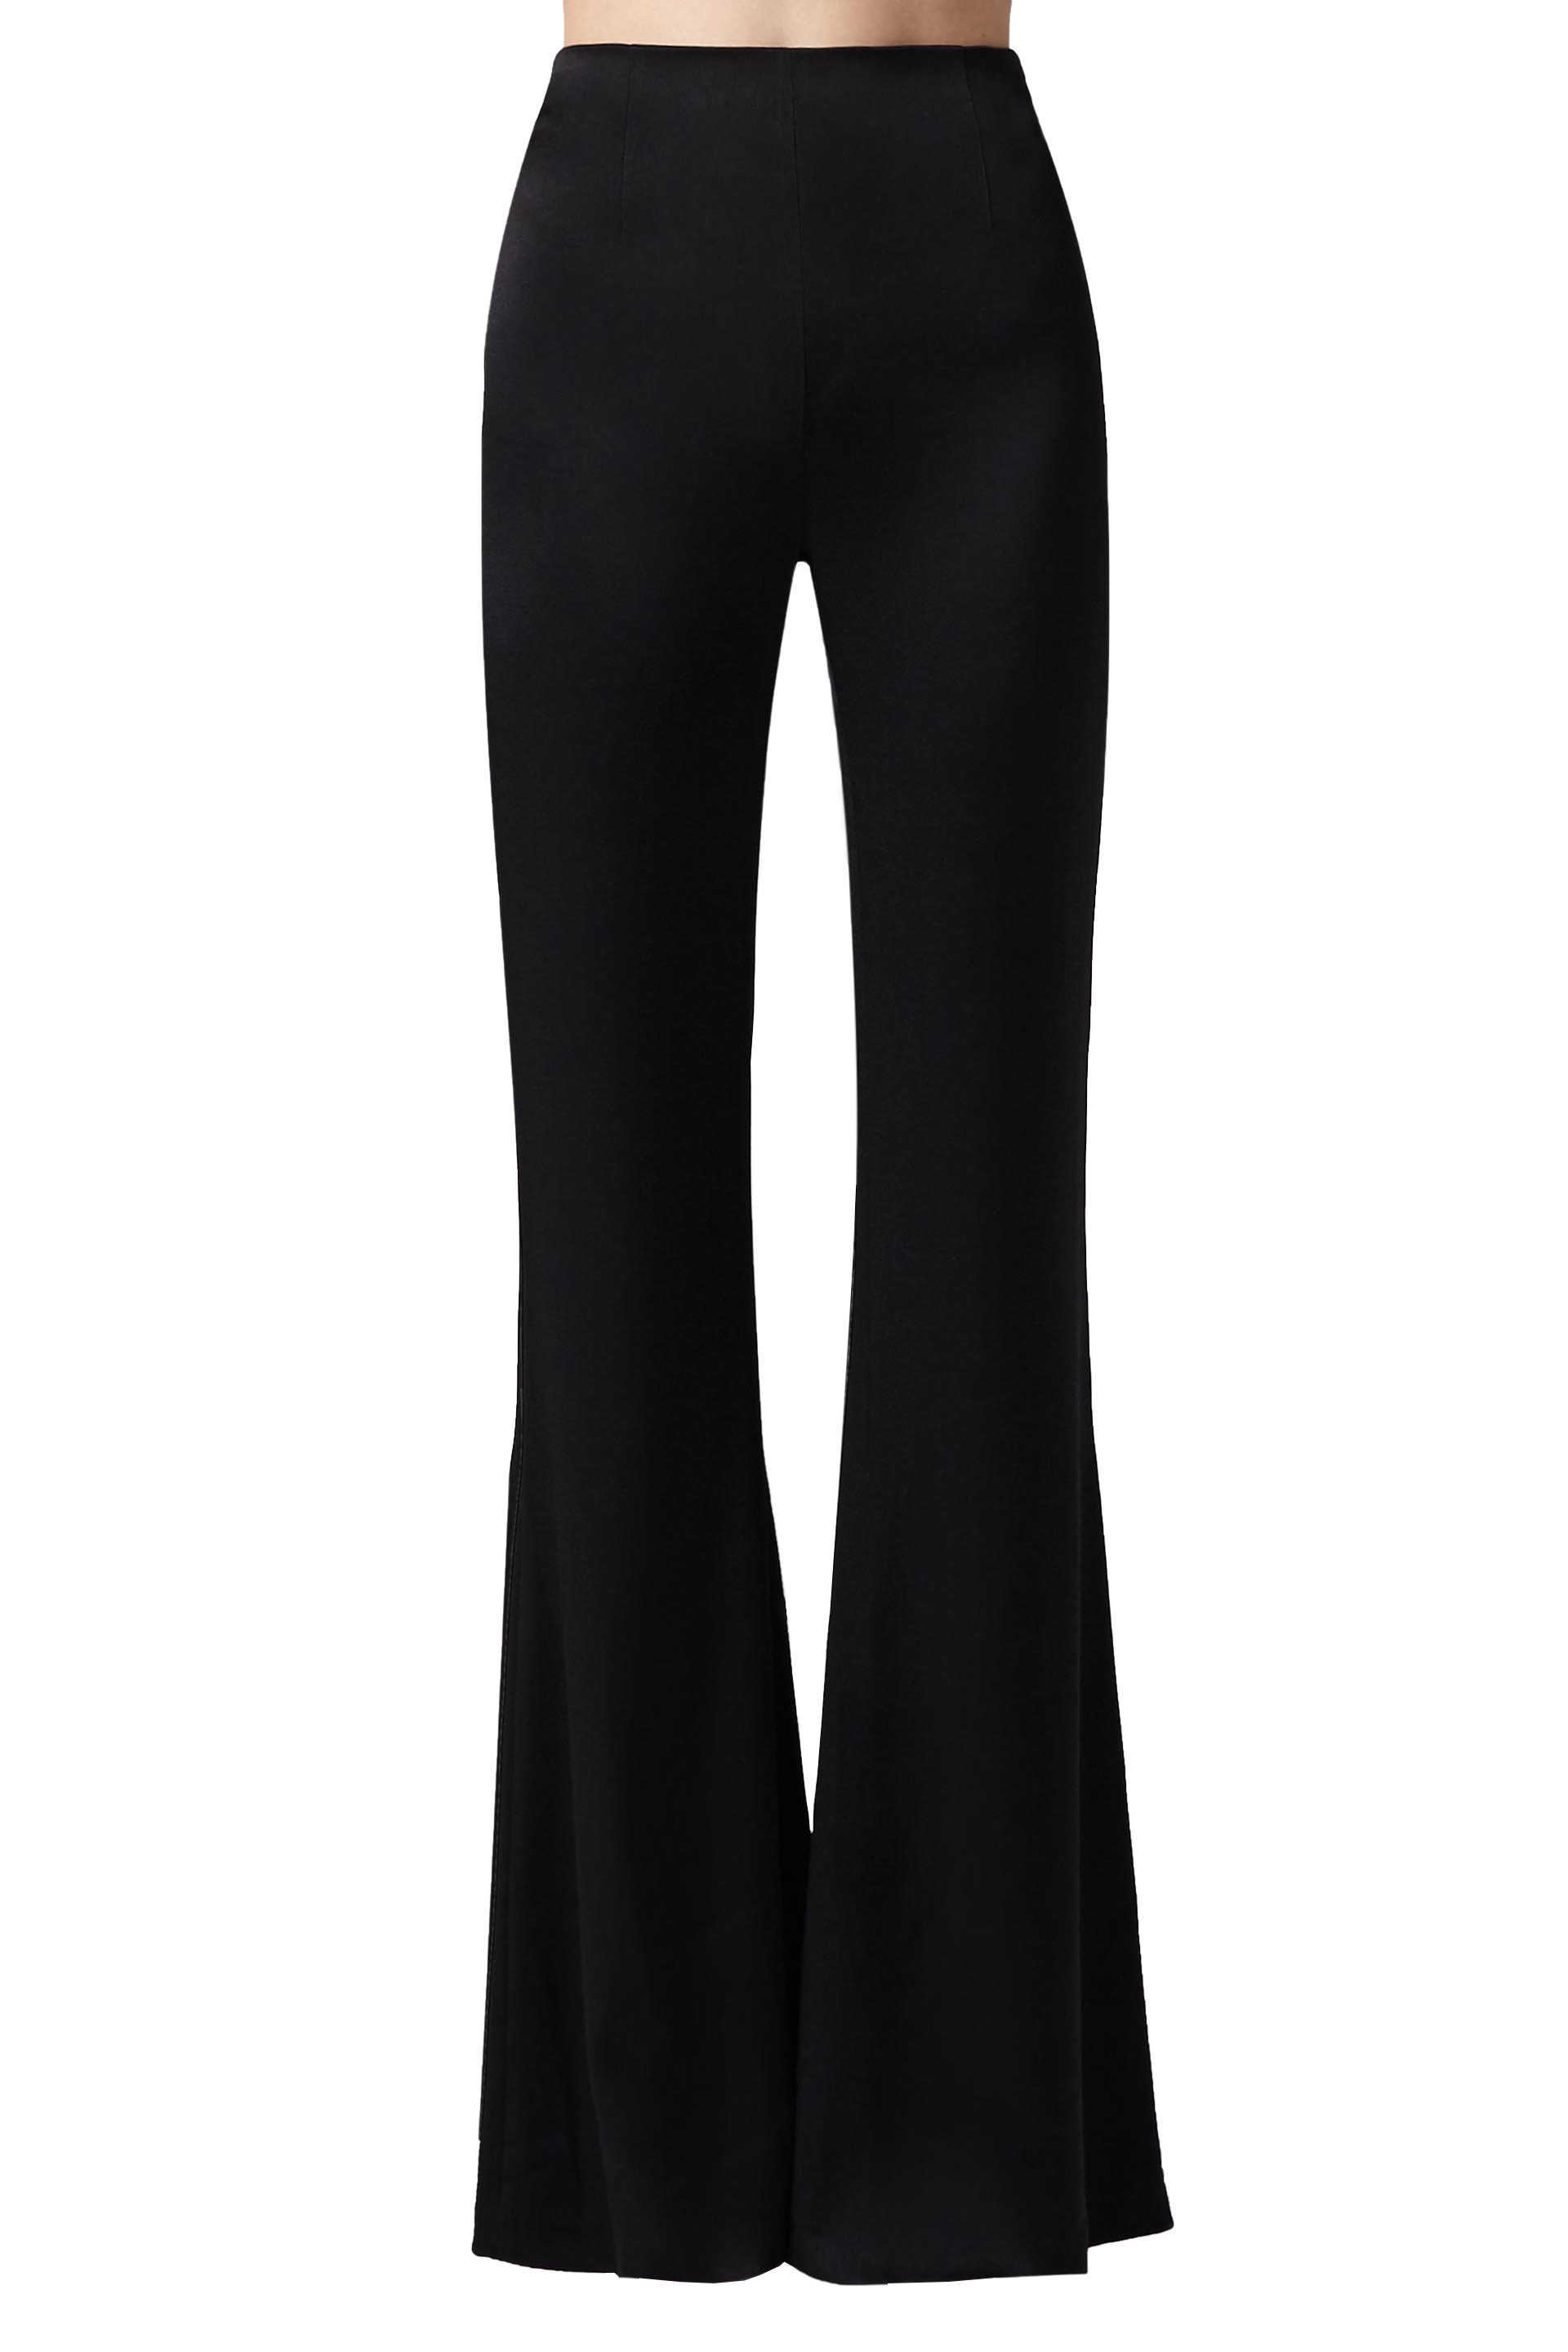 High Waisted Satin Trousers in Black